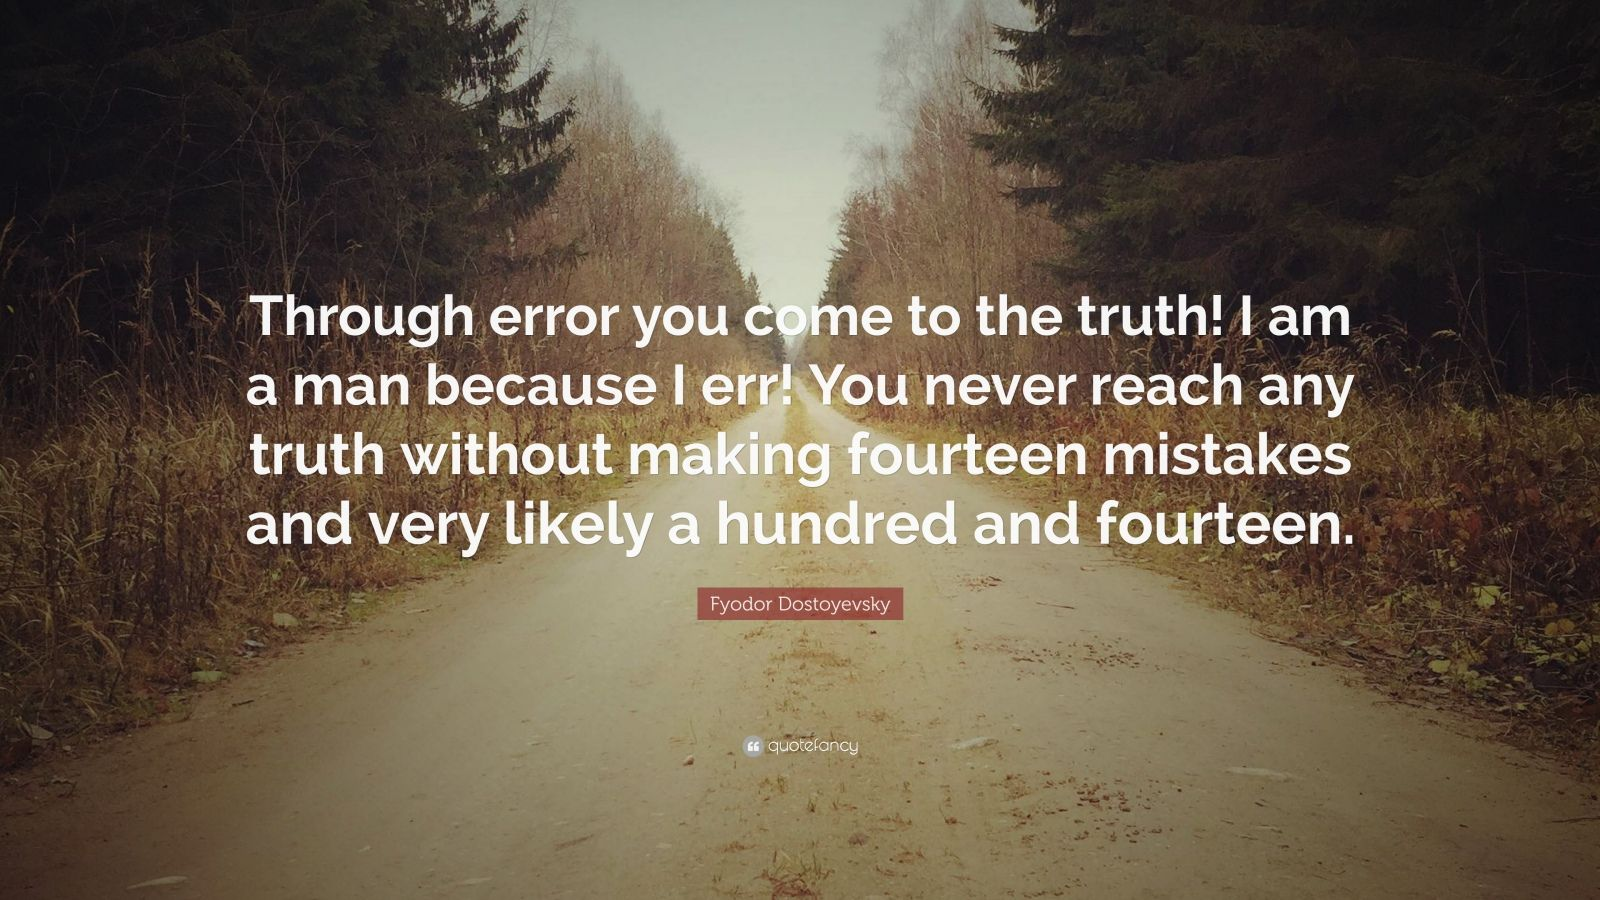 "Fyodor Dostoyevsky Quote: ""Through error you come to the truth! I am a man because I err! You never reach any truth without making fourteen mistakes and very likely a hundred and fourteen."""